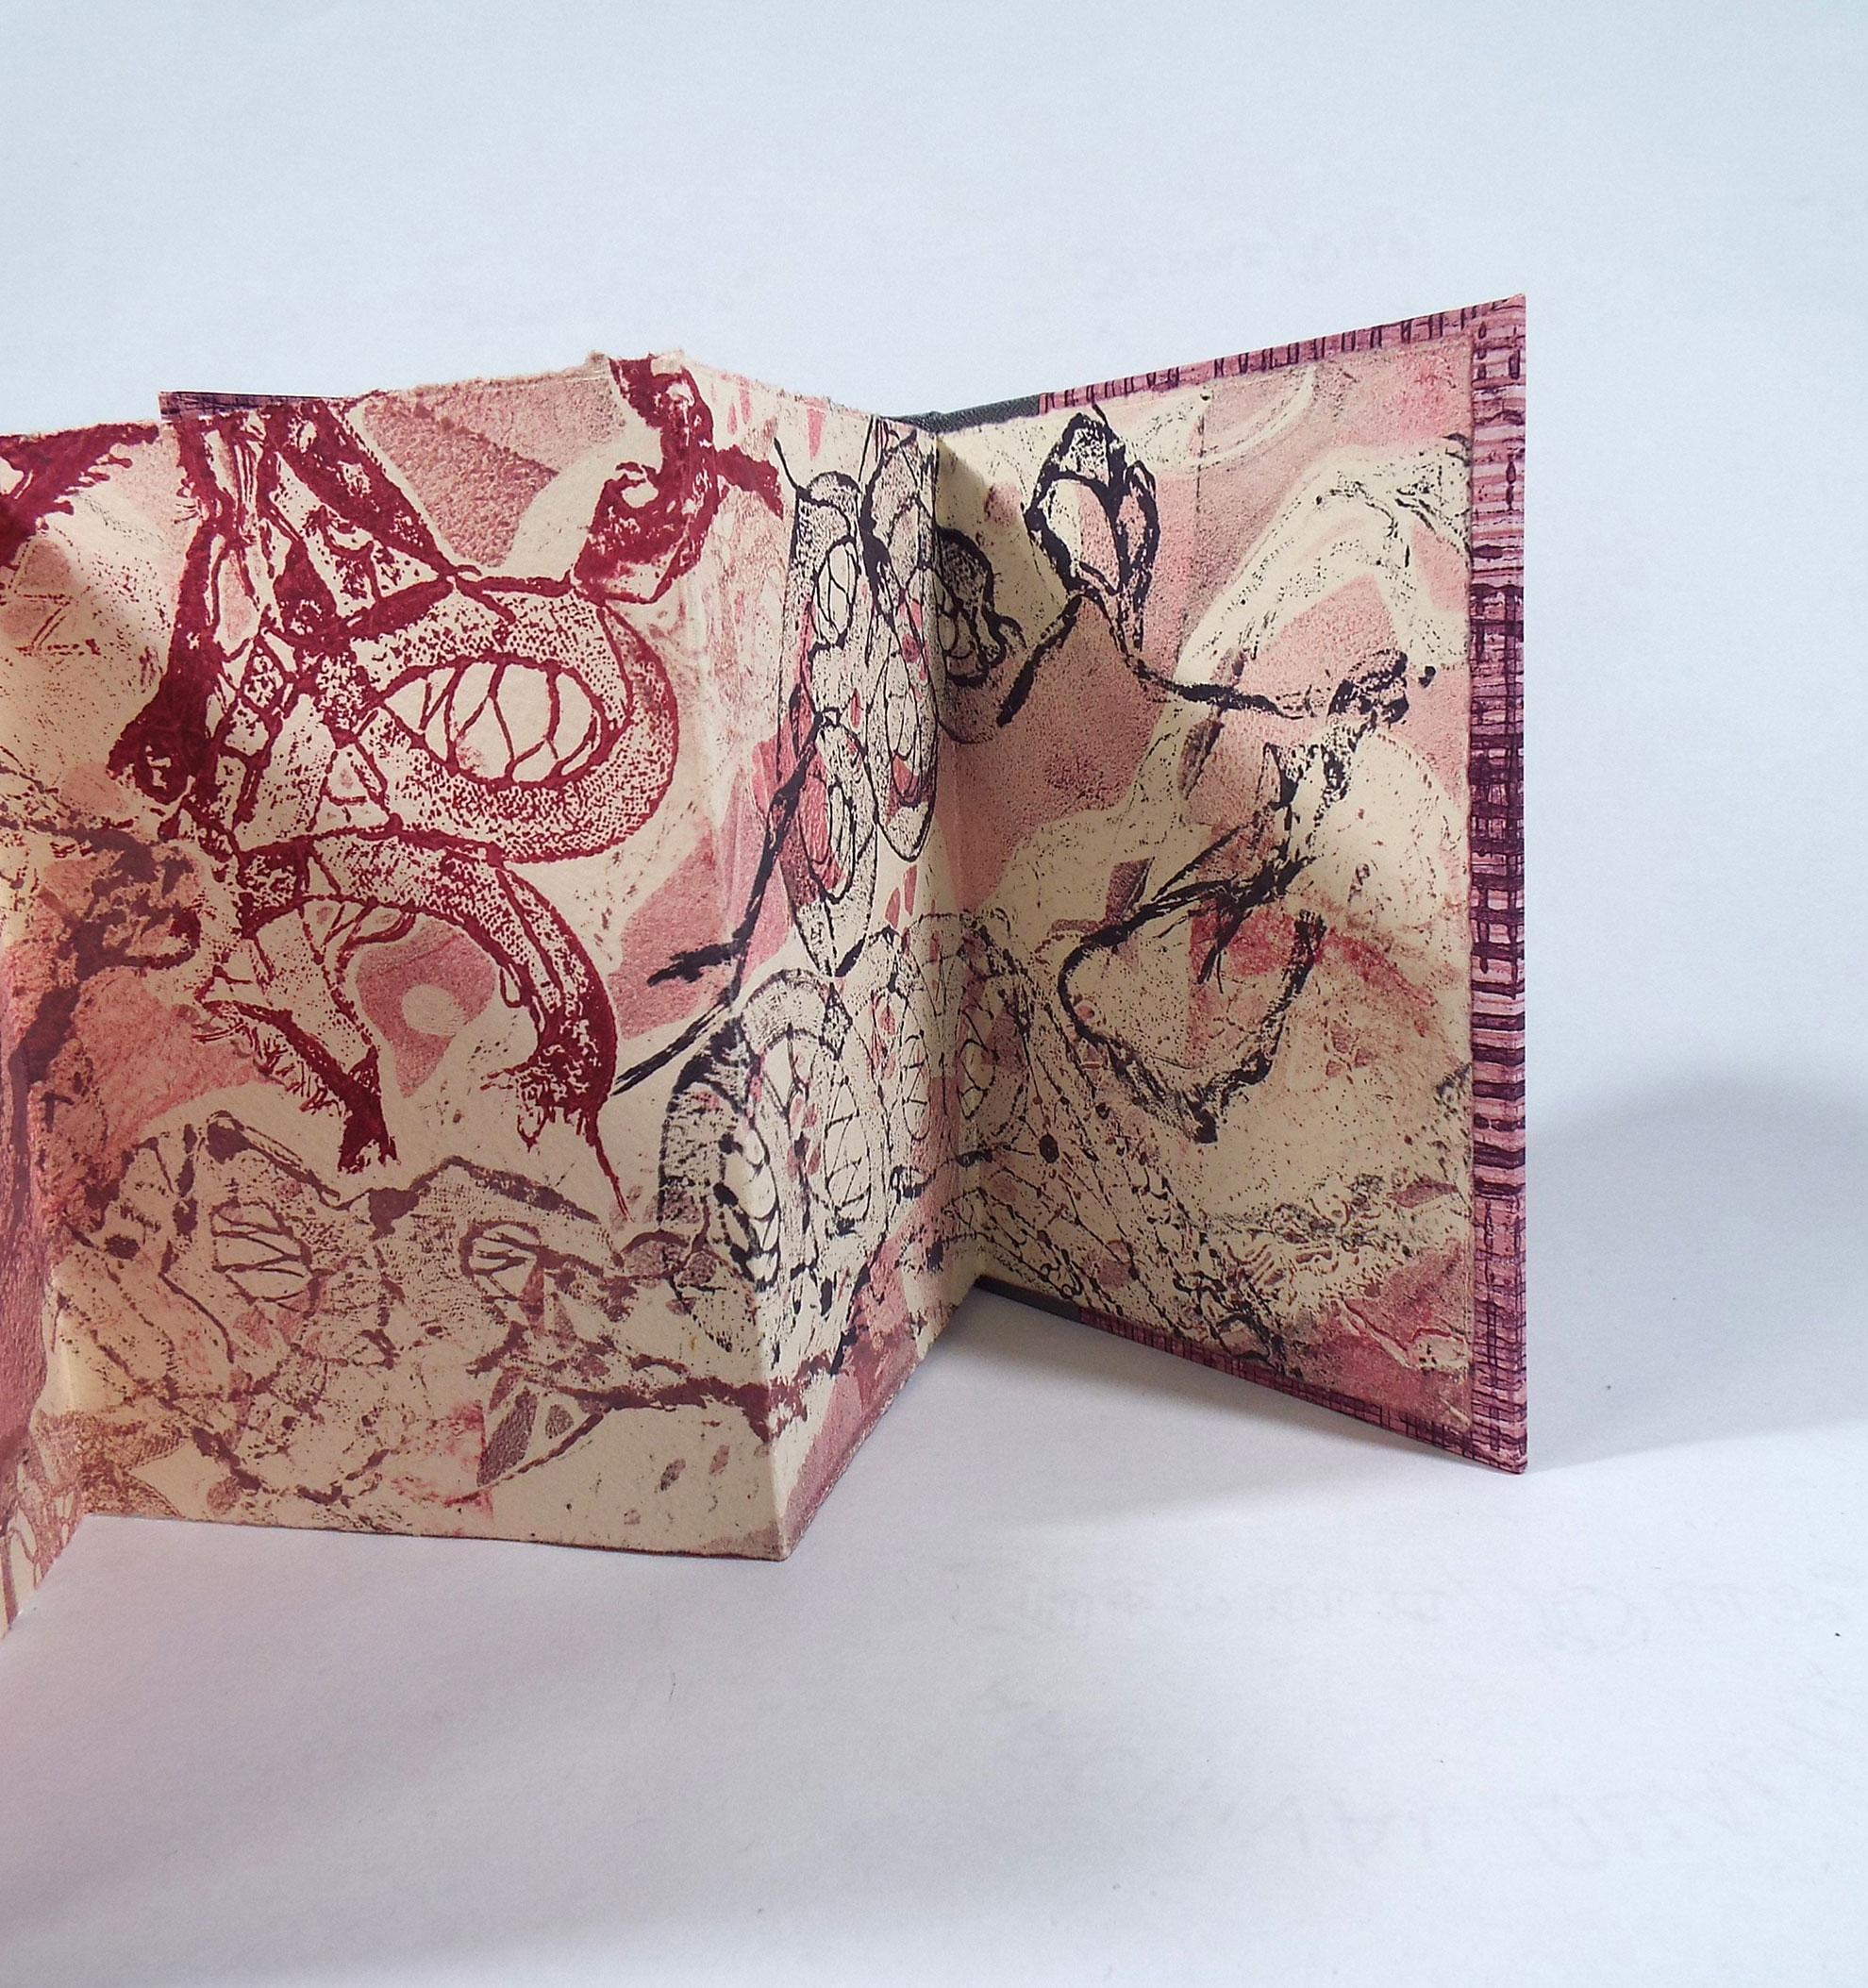 Cristina Hajosy, Lace Lost, Gelatin Plate Printmaking with Paste Paper cover, 2014, $125, Canton, MA